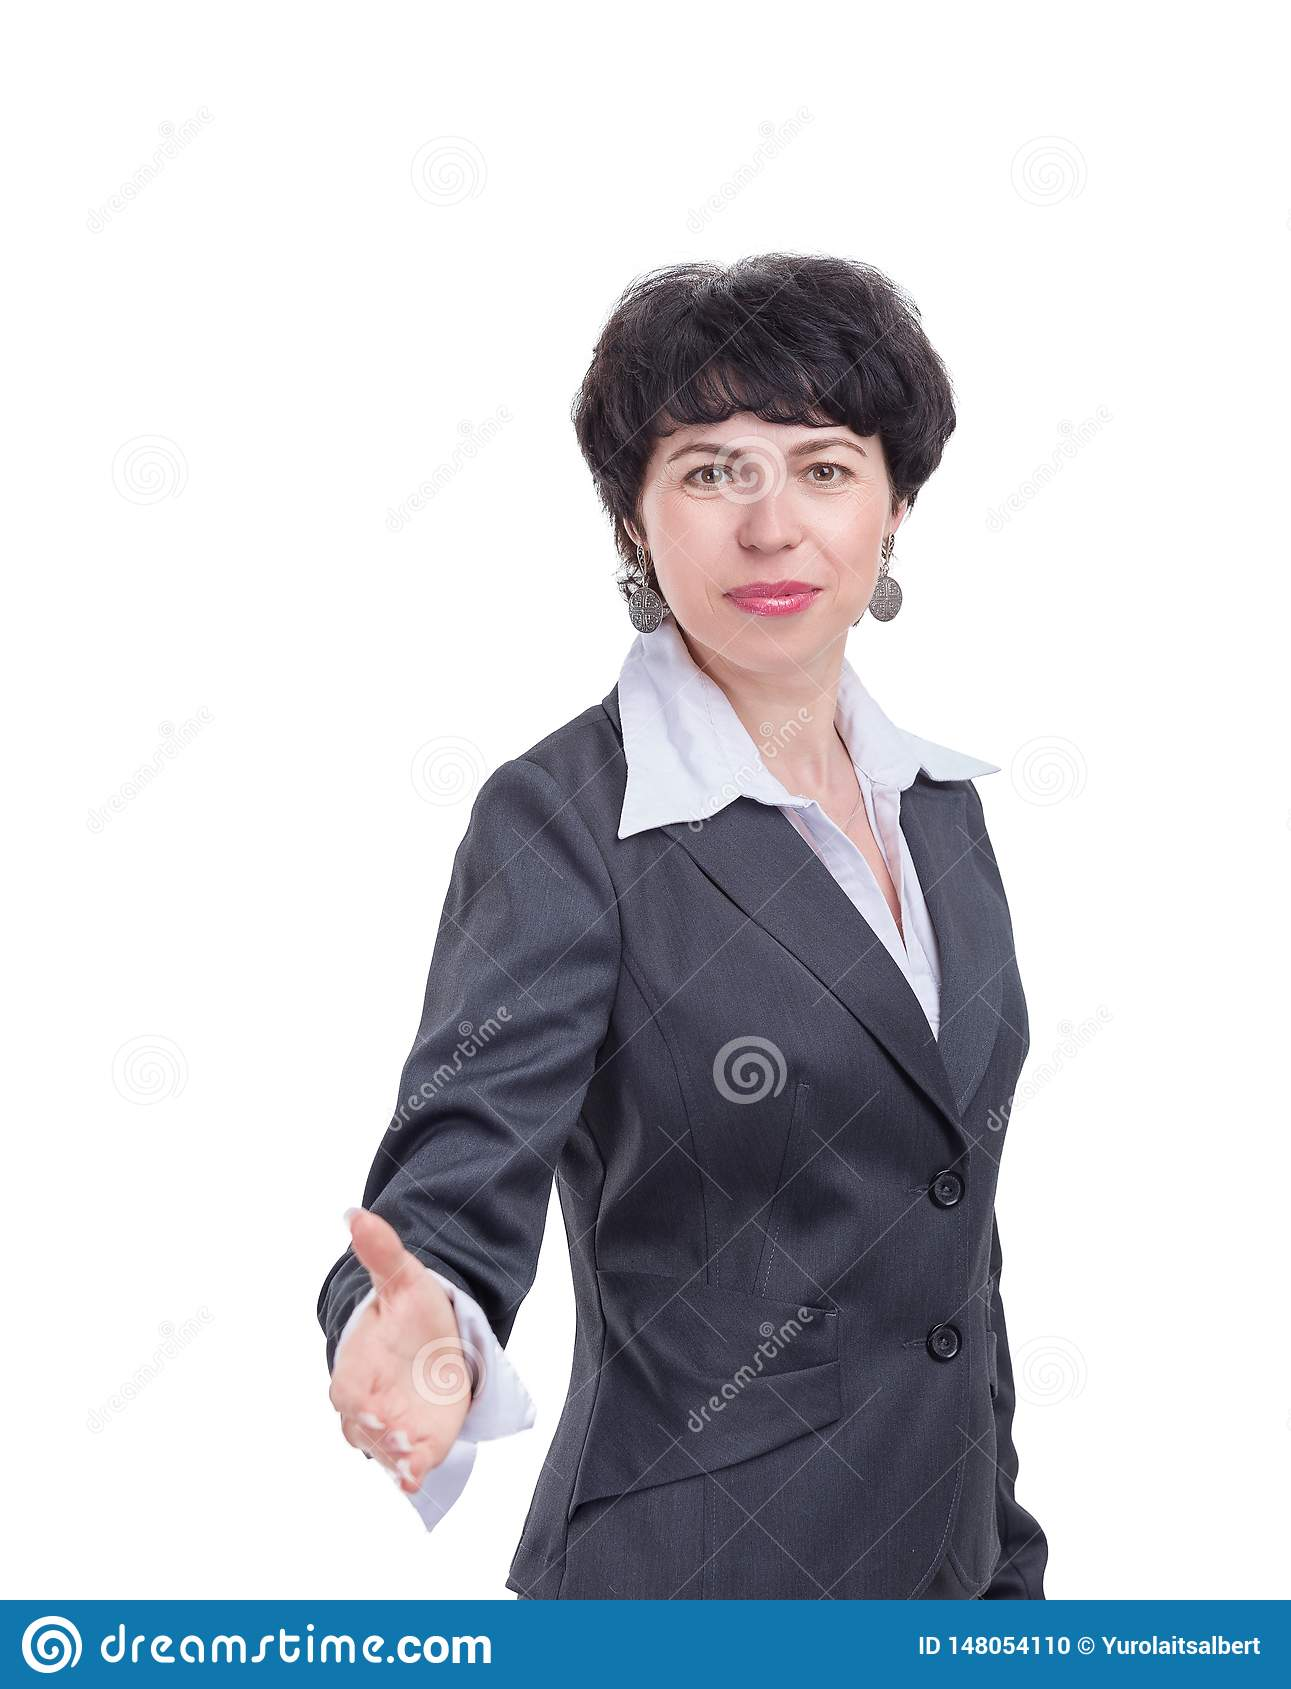 Successful business woman holding out her hand for a handshake